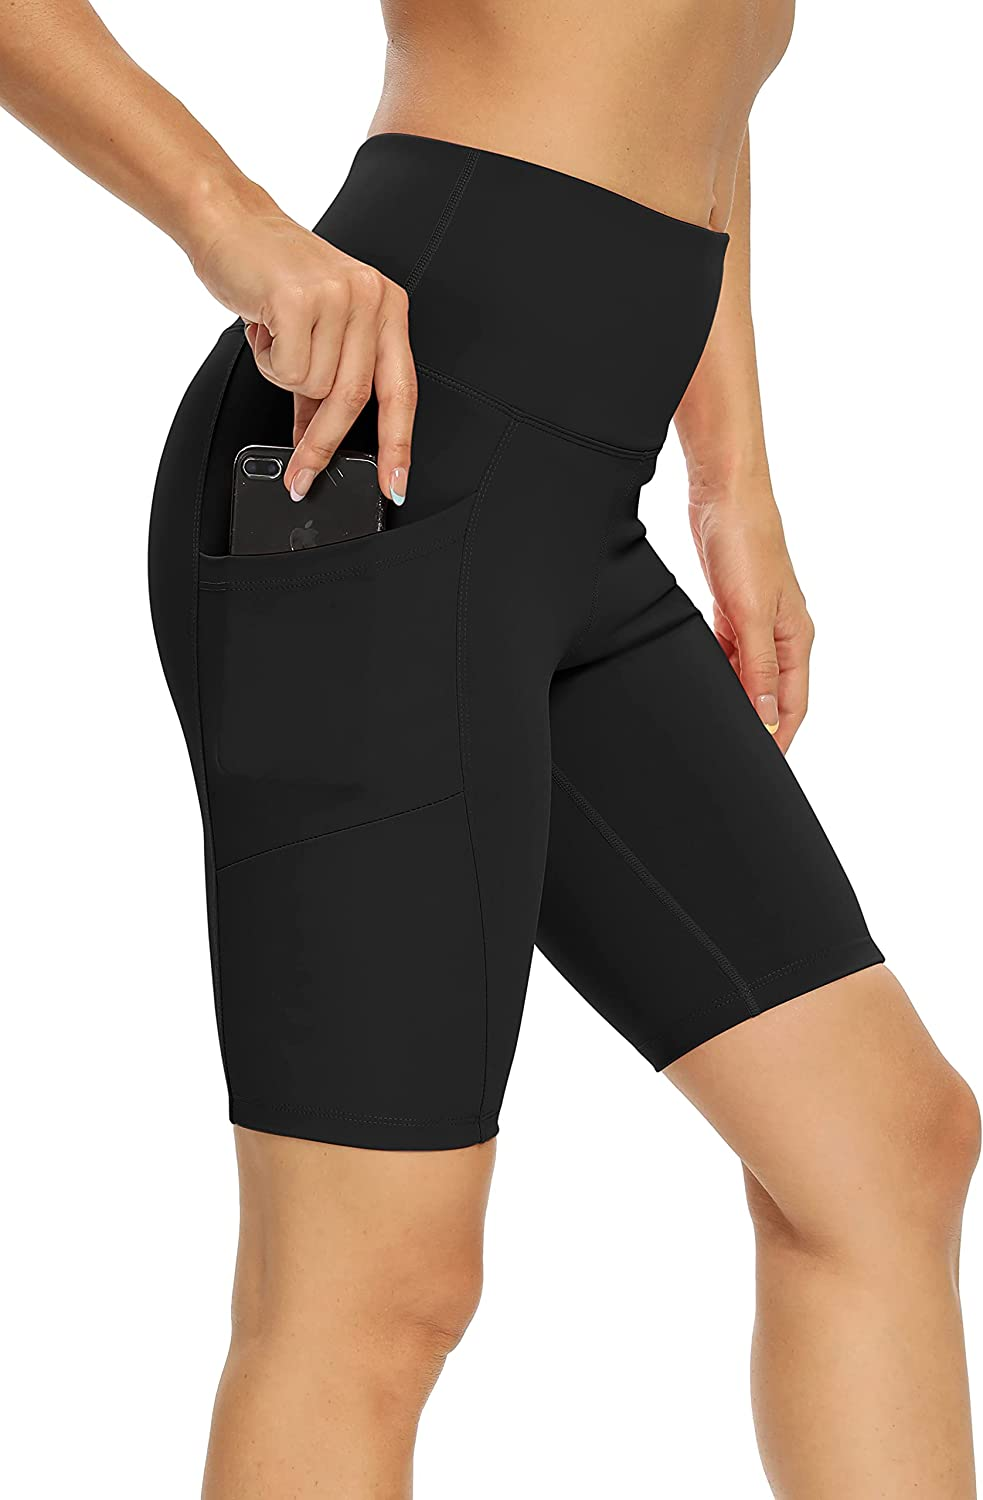 Bestisun High Waisted Max 63% OFF Sweat Athletic Worko Women Sale SALE% OFF Shorts Yoga for